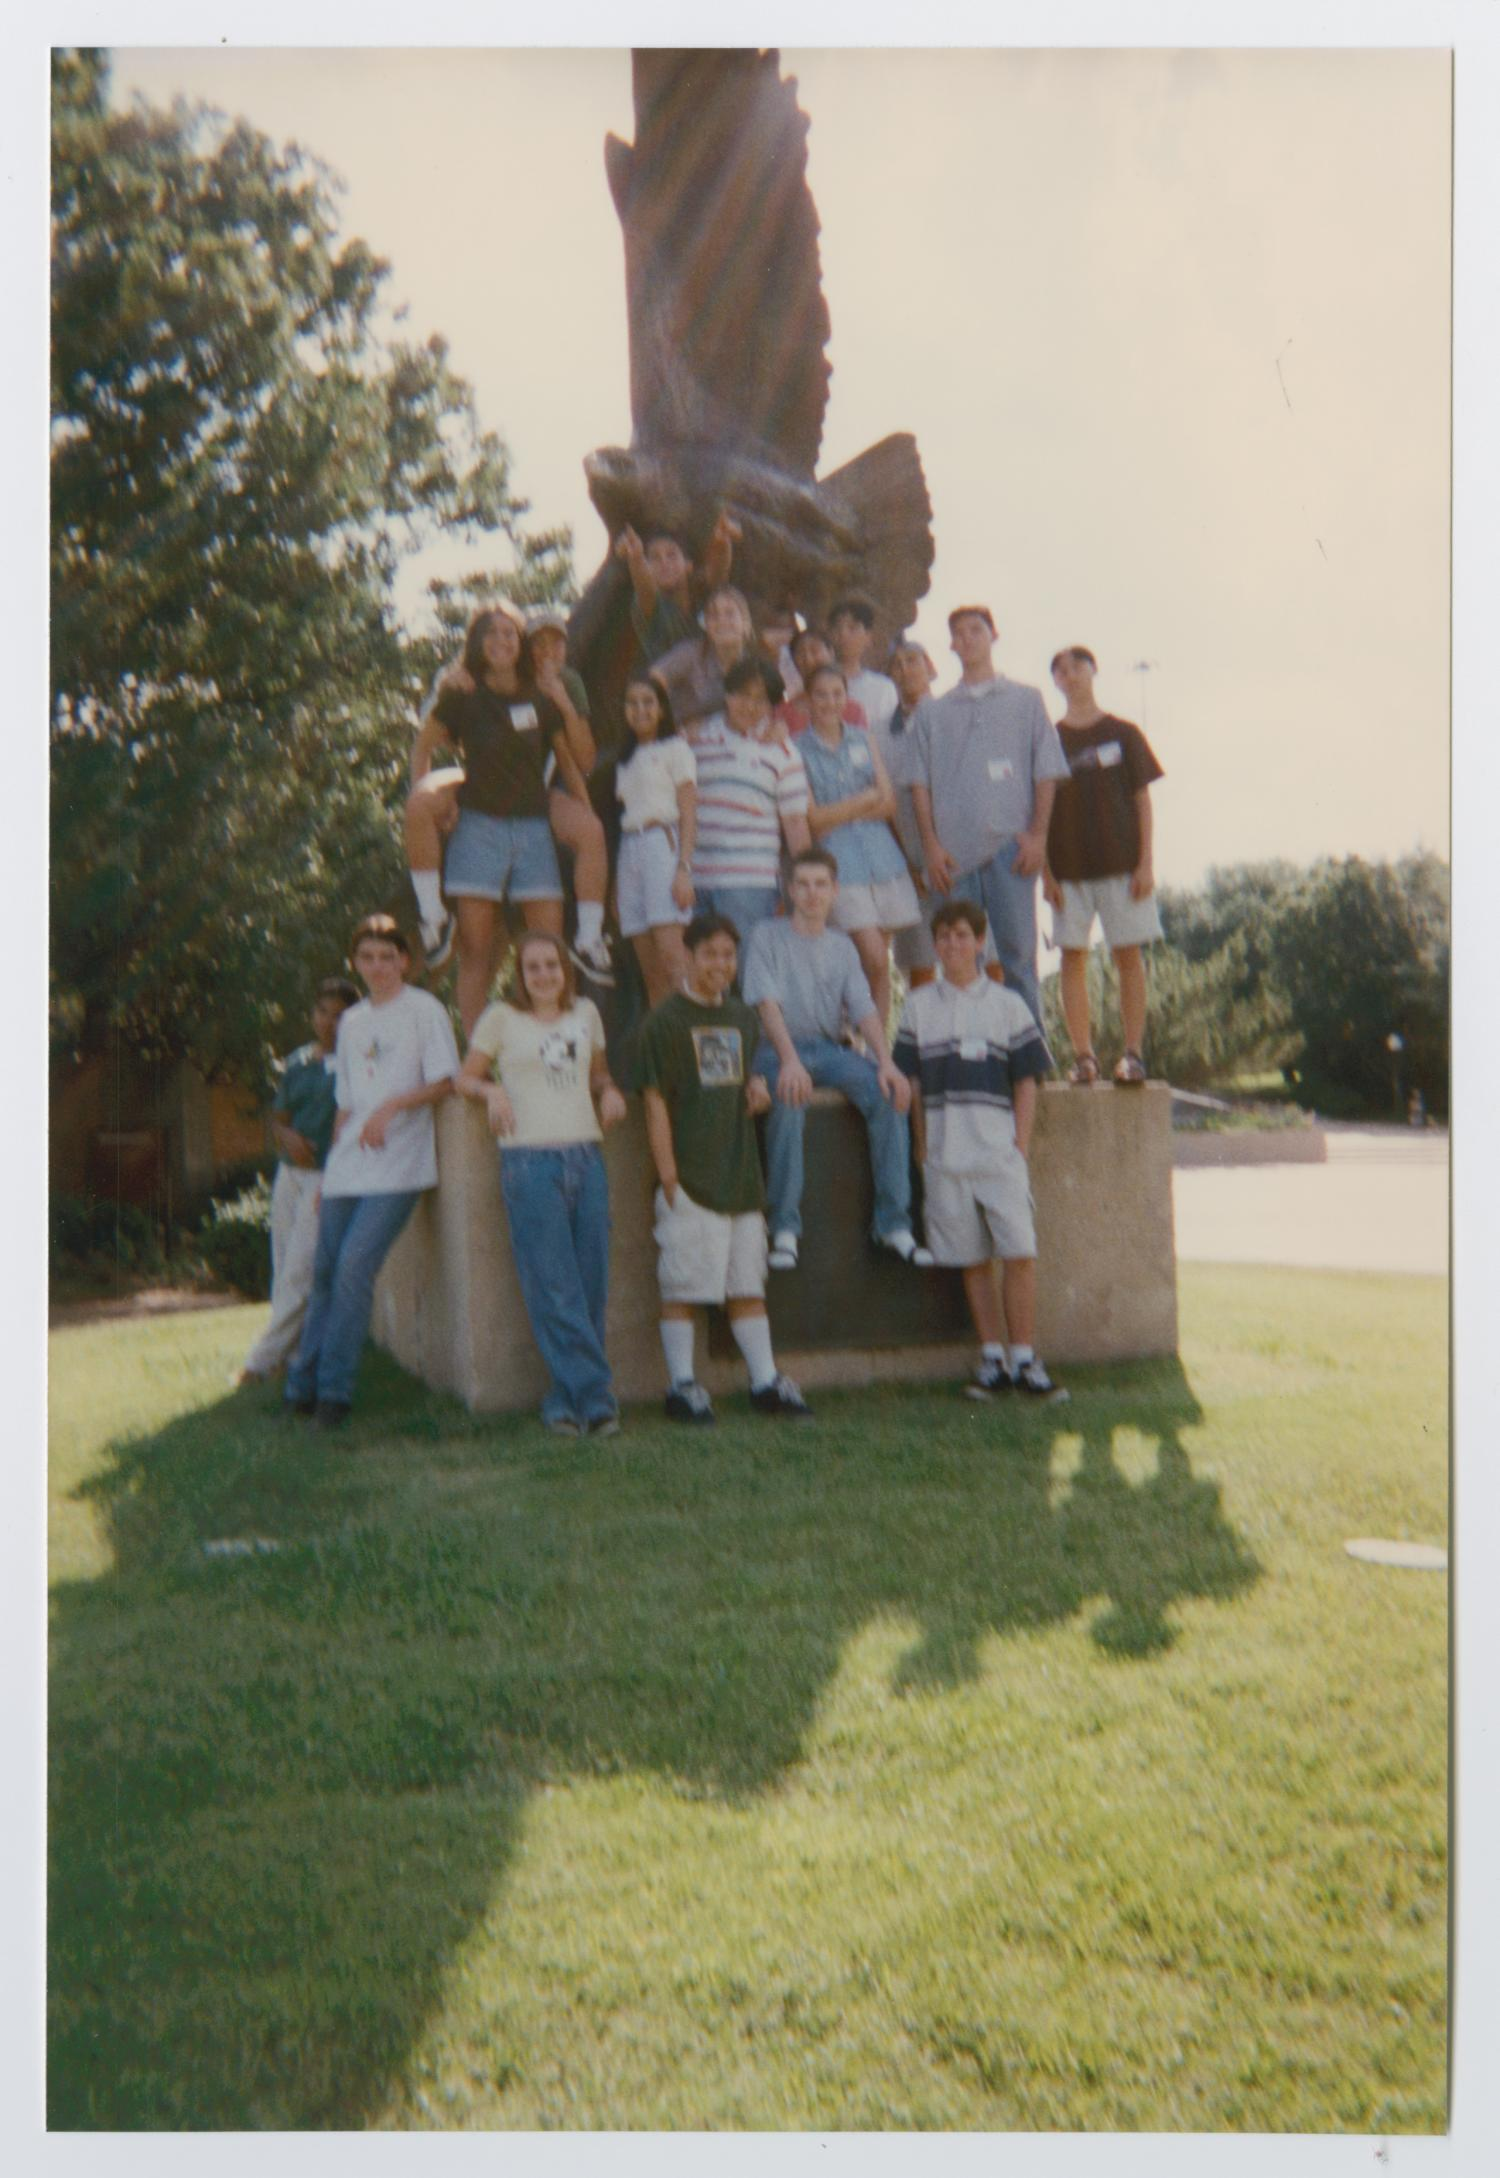 Group of students standing on the ground and on the raised base of a statue outdoors. The statue above them is of a flying eagle.